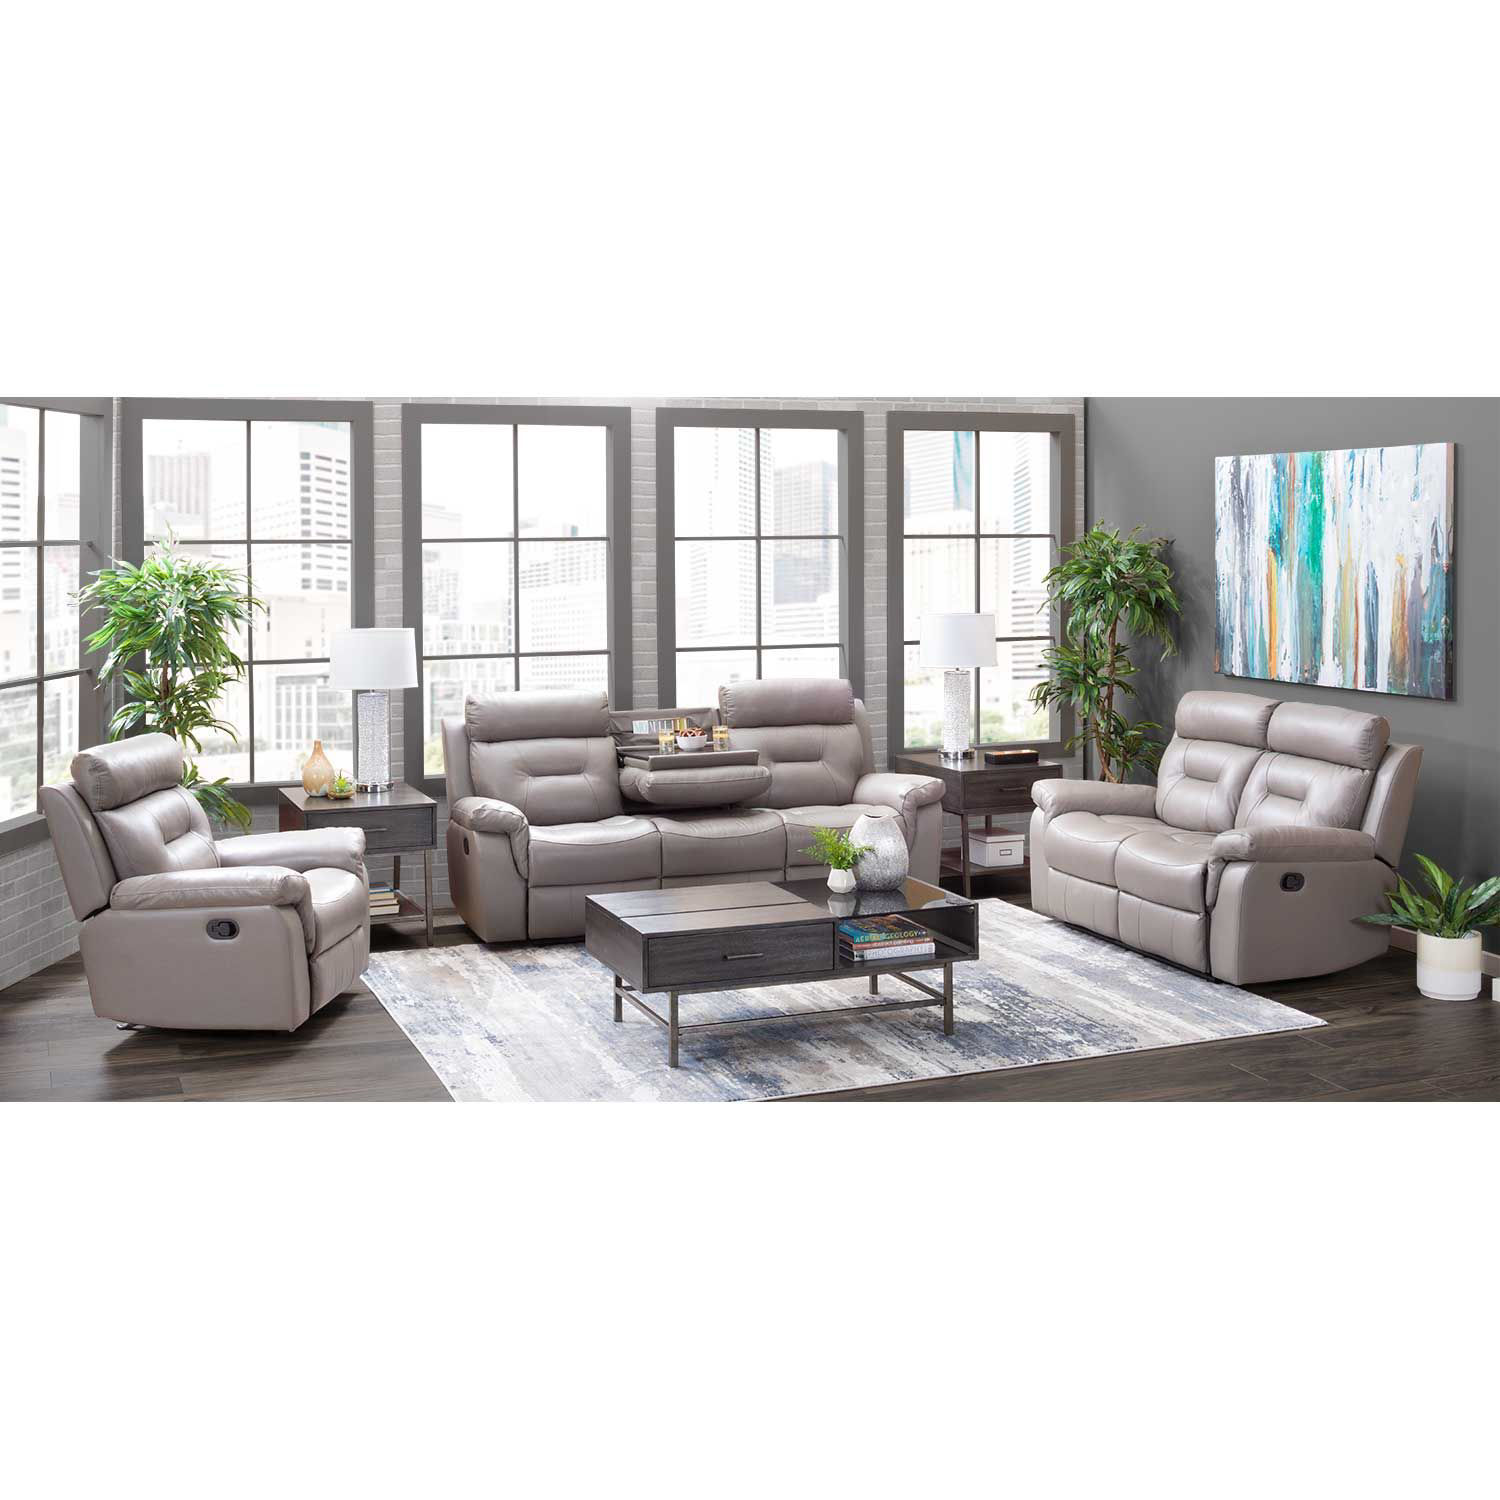 Picture of Watson Light Gray Leather Reclining Loveseat